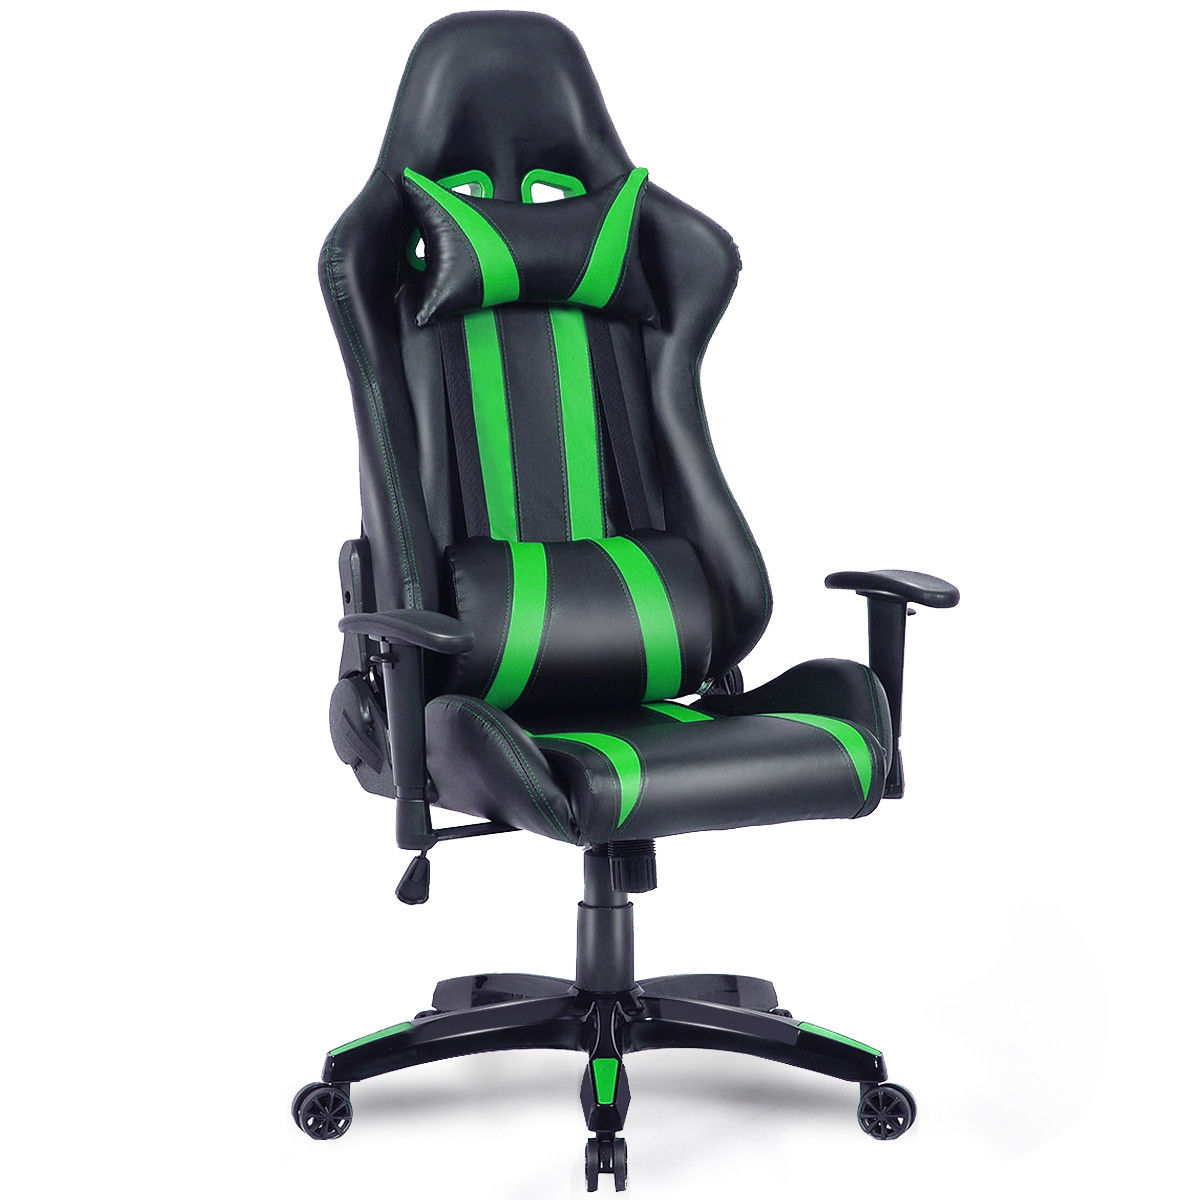 computer chairs for gaming slipcovered chair and a half costway executive racing style high back reclining office black green walmart com